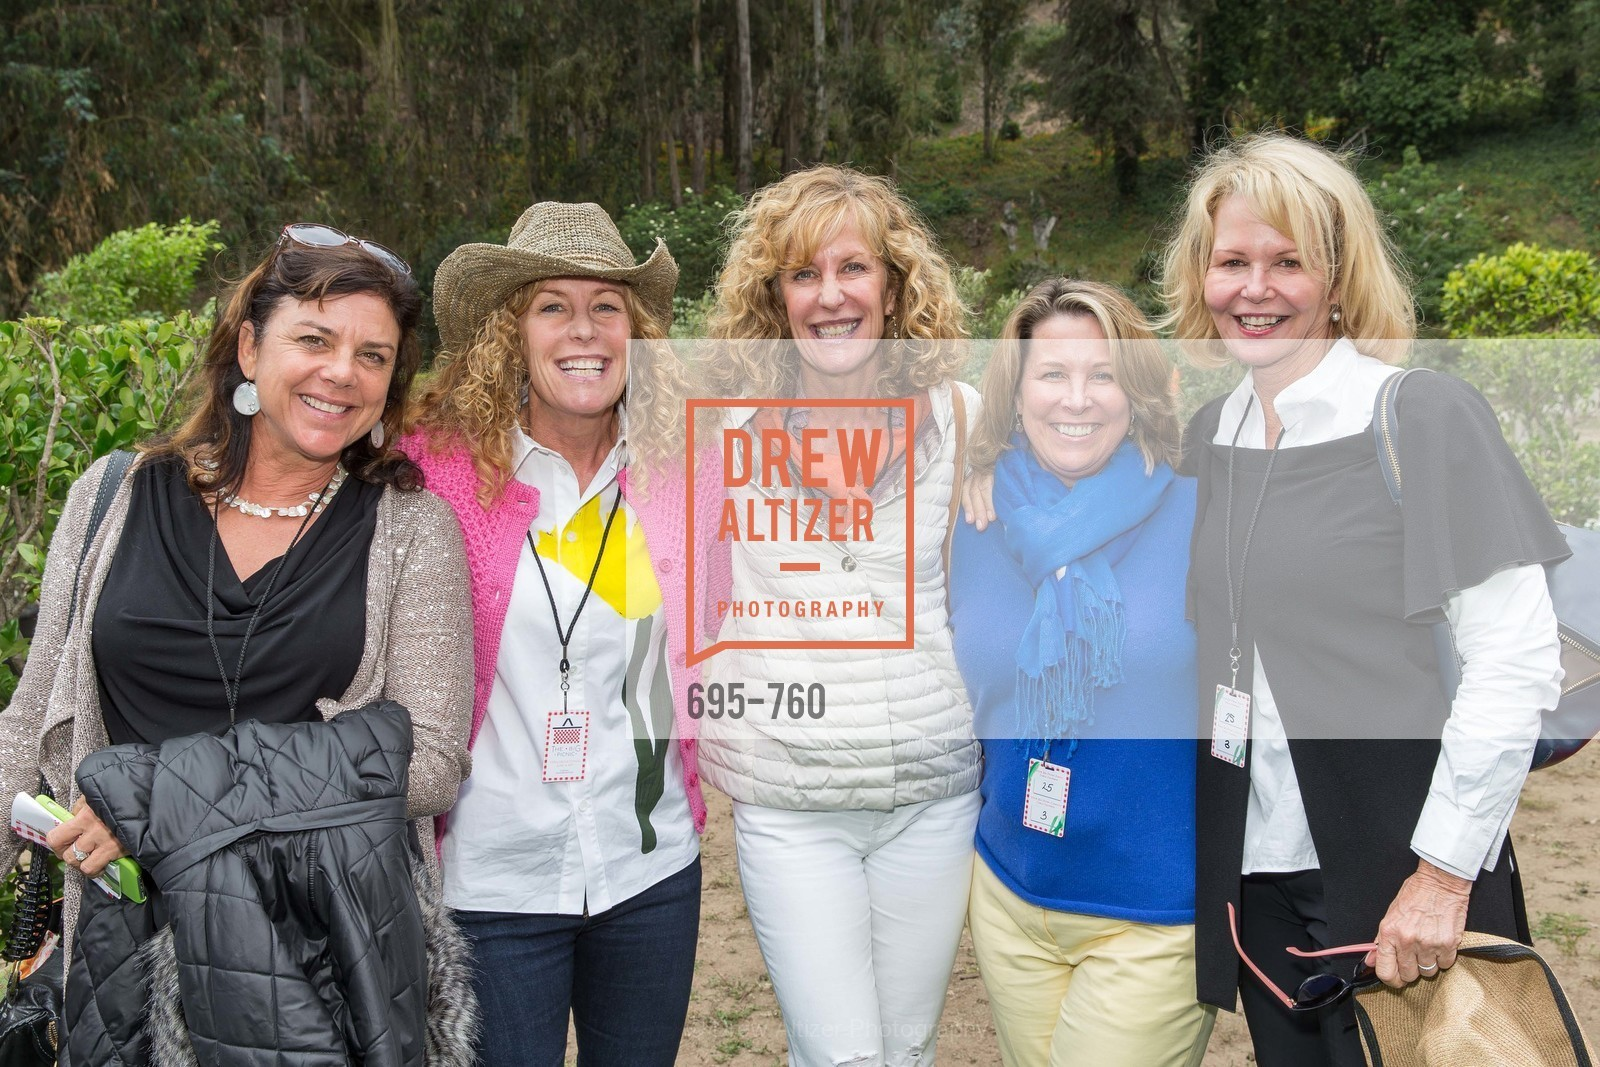 Connie Ring, Lori Corley, Lisa Steiny, Linda Walsh, Nancy Suiter, The Big Picnic! A Benefit & Concert for STERN GROVE FESTIVAL, US, June 14th, 2015,Drew Altizer, Drew Altizer Photography, full-service agency, private events, San Francisco photographer, photographer california